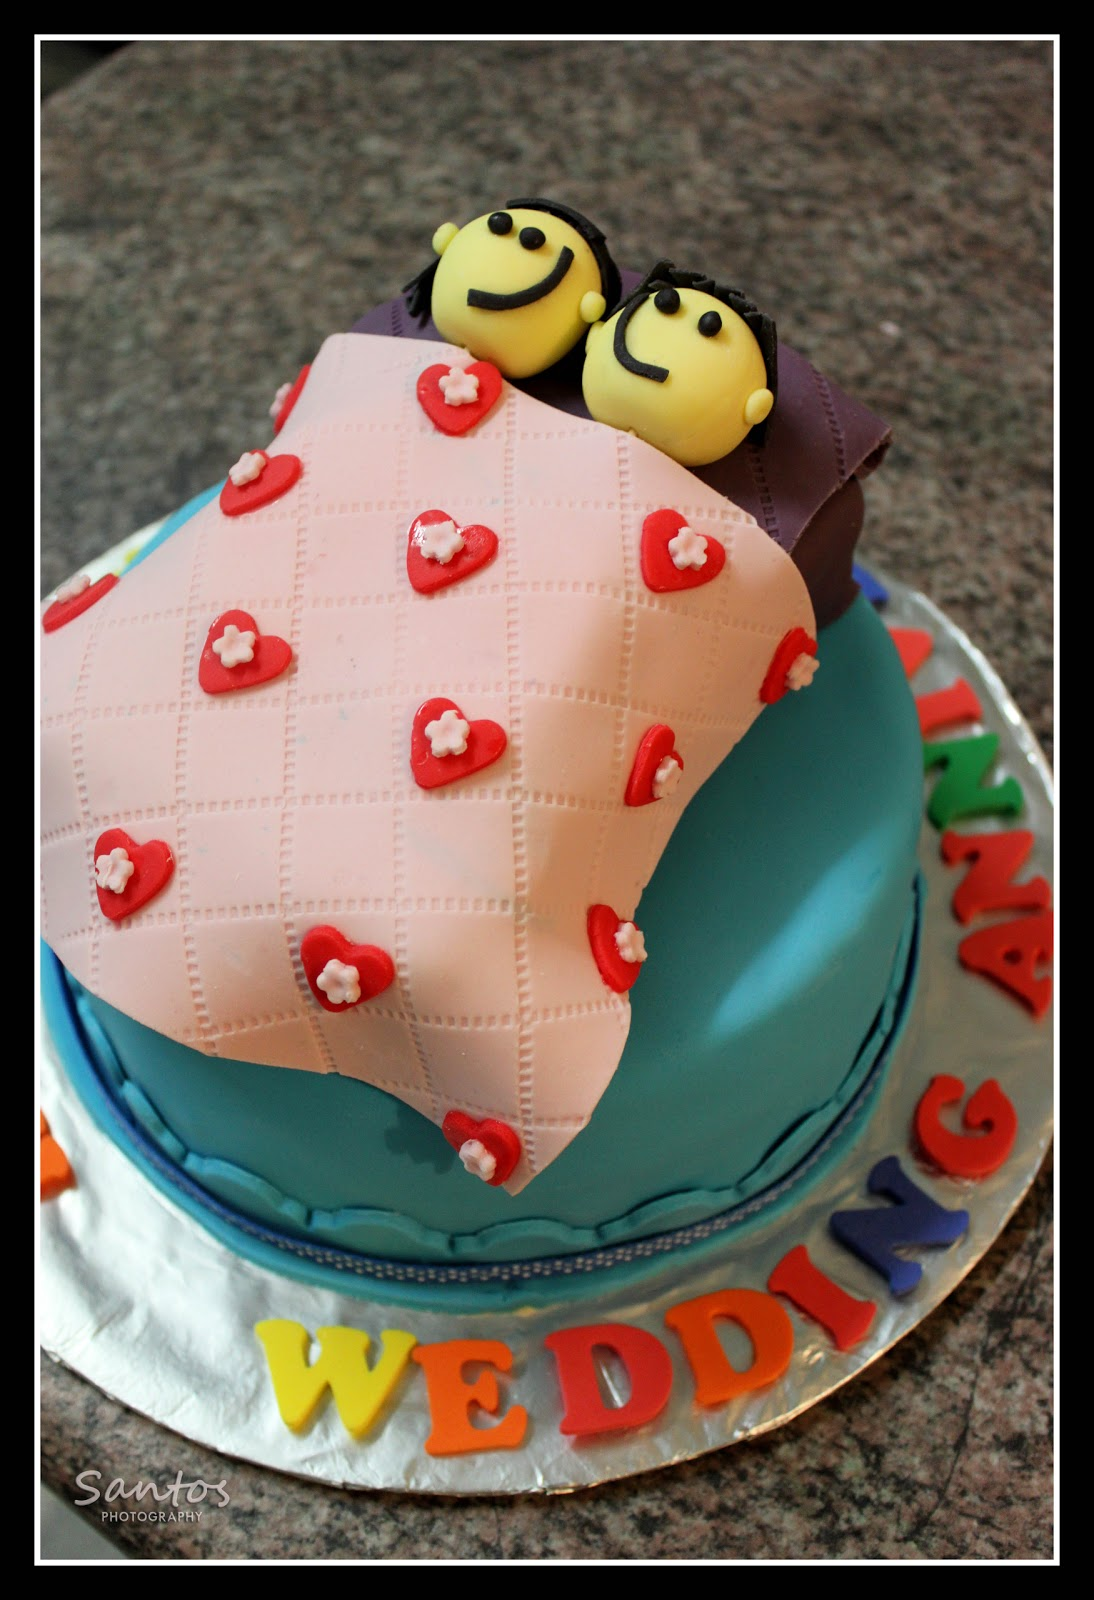 Funny anniversary cake quotes -  Anniversary Cake Made Fora Funny Meme Cakes Wedding Cakes Cool Ideas Meme Lol And Funny